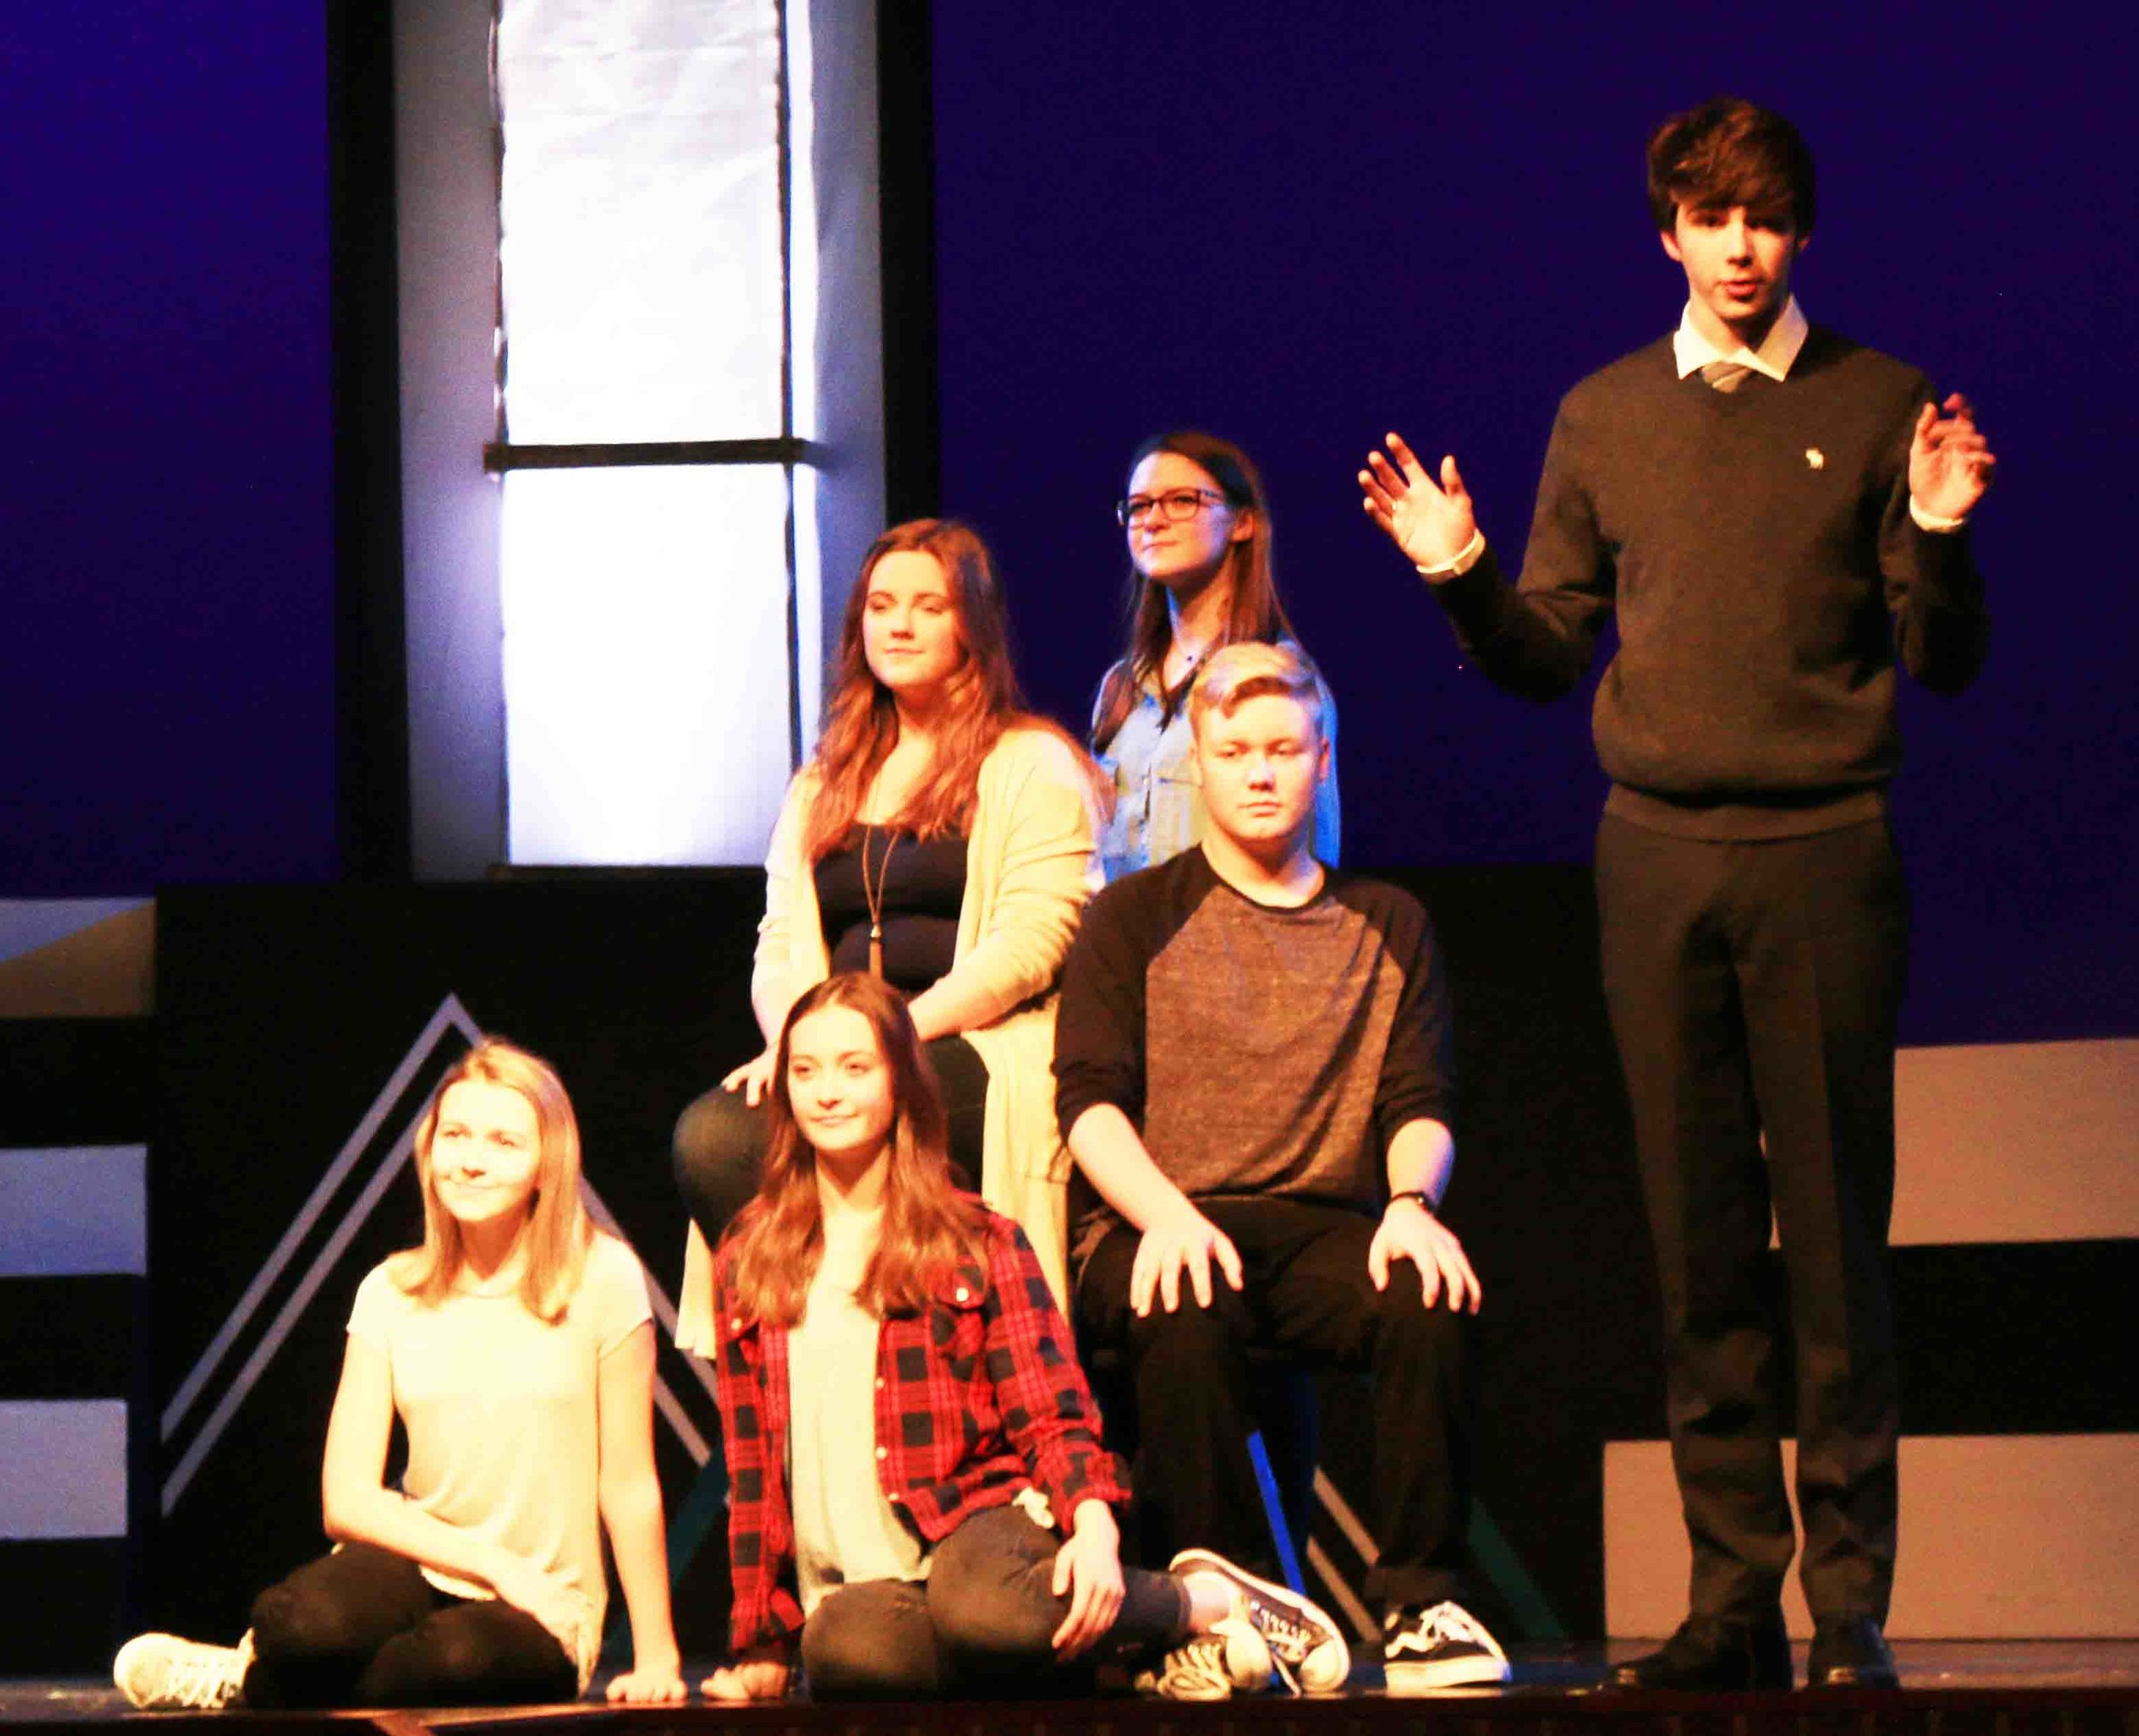 "(From left) Grace Felton, Natalie Edwards, Maddie Konecny, Zane Dodd, Julia Dobbs and Luke Wild - ""Family Portrait"" a father contemplates his family relationships and how he affects them."